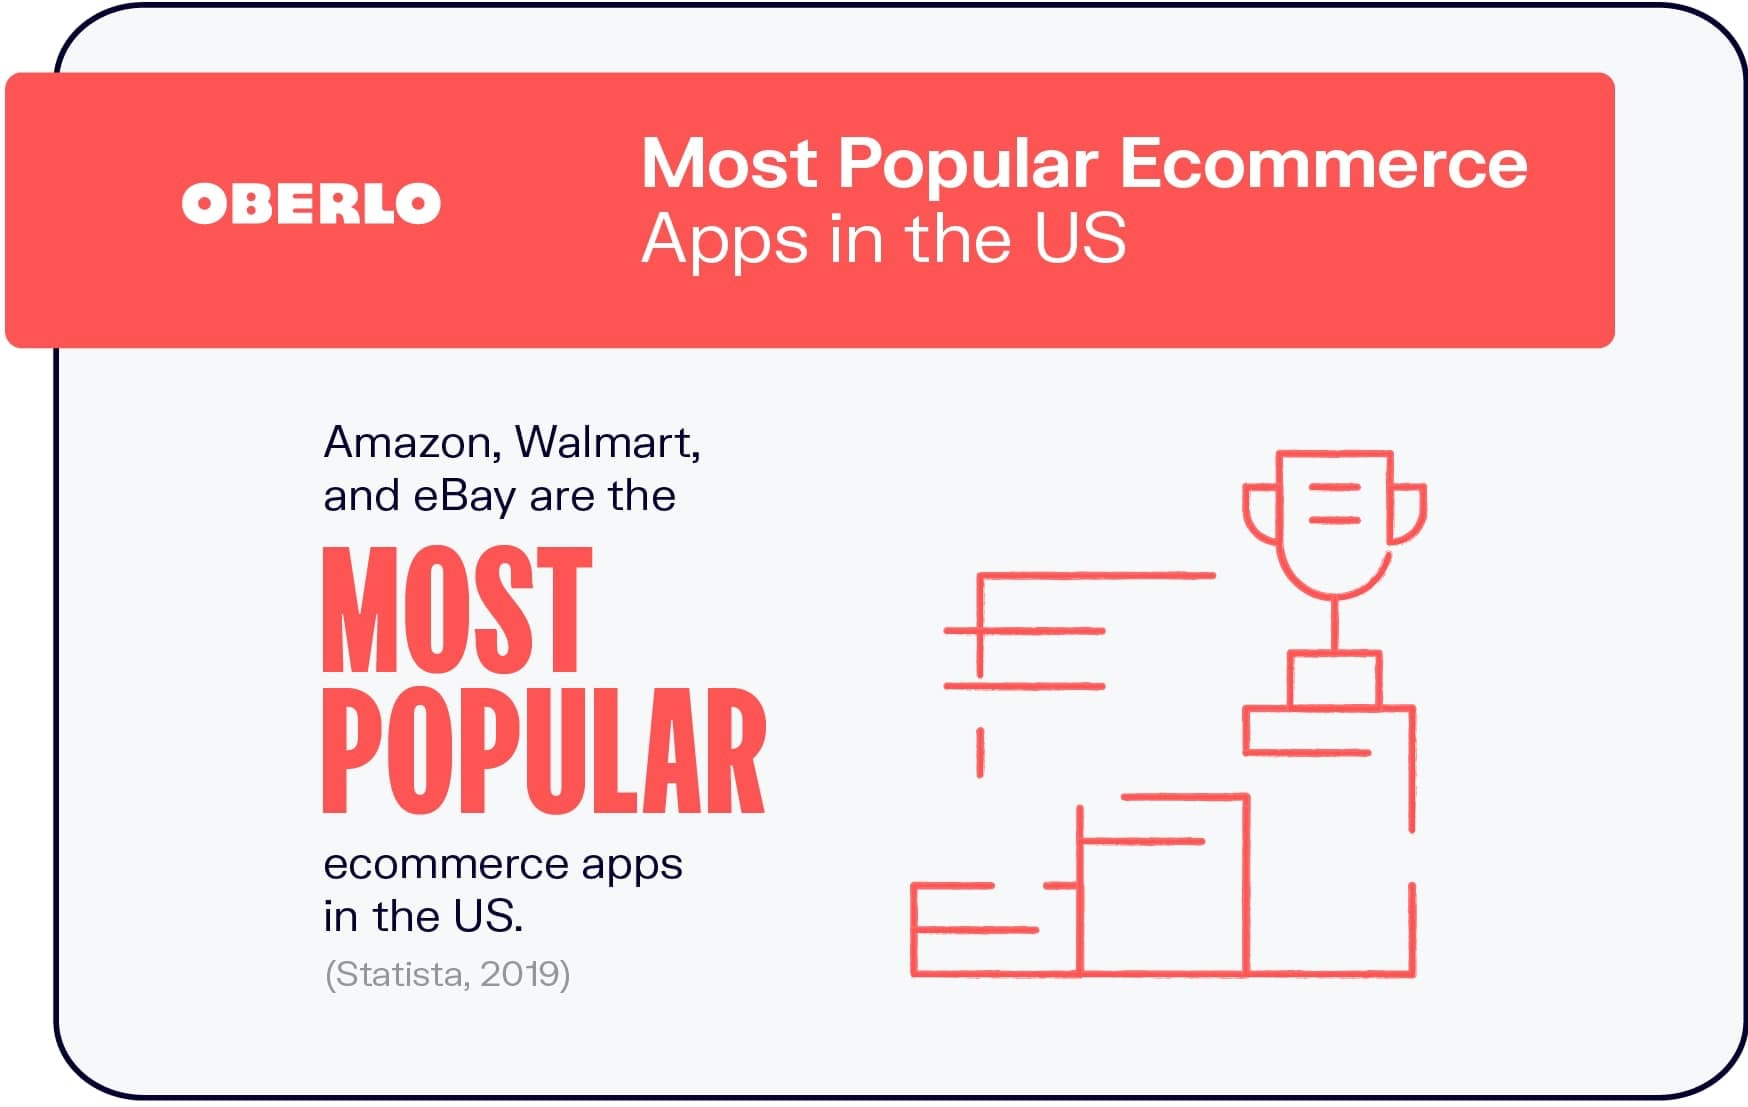 Most Popular Ecommerce Apps in the US